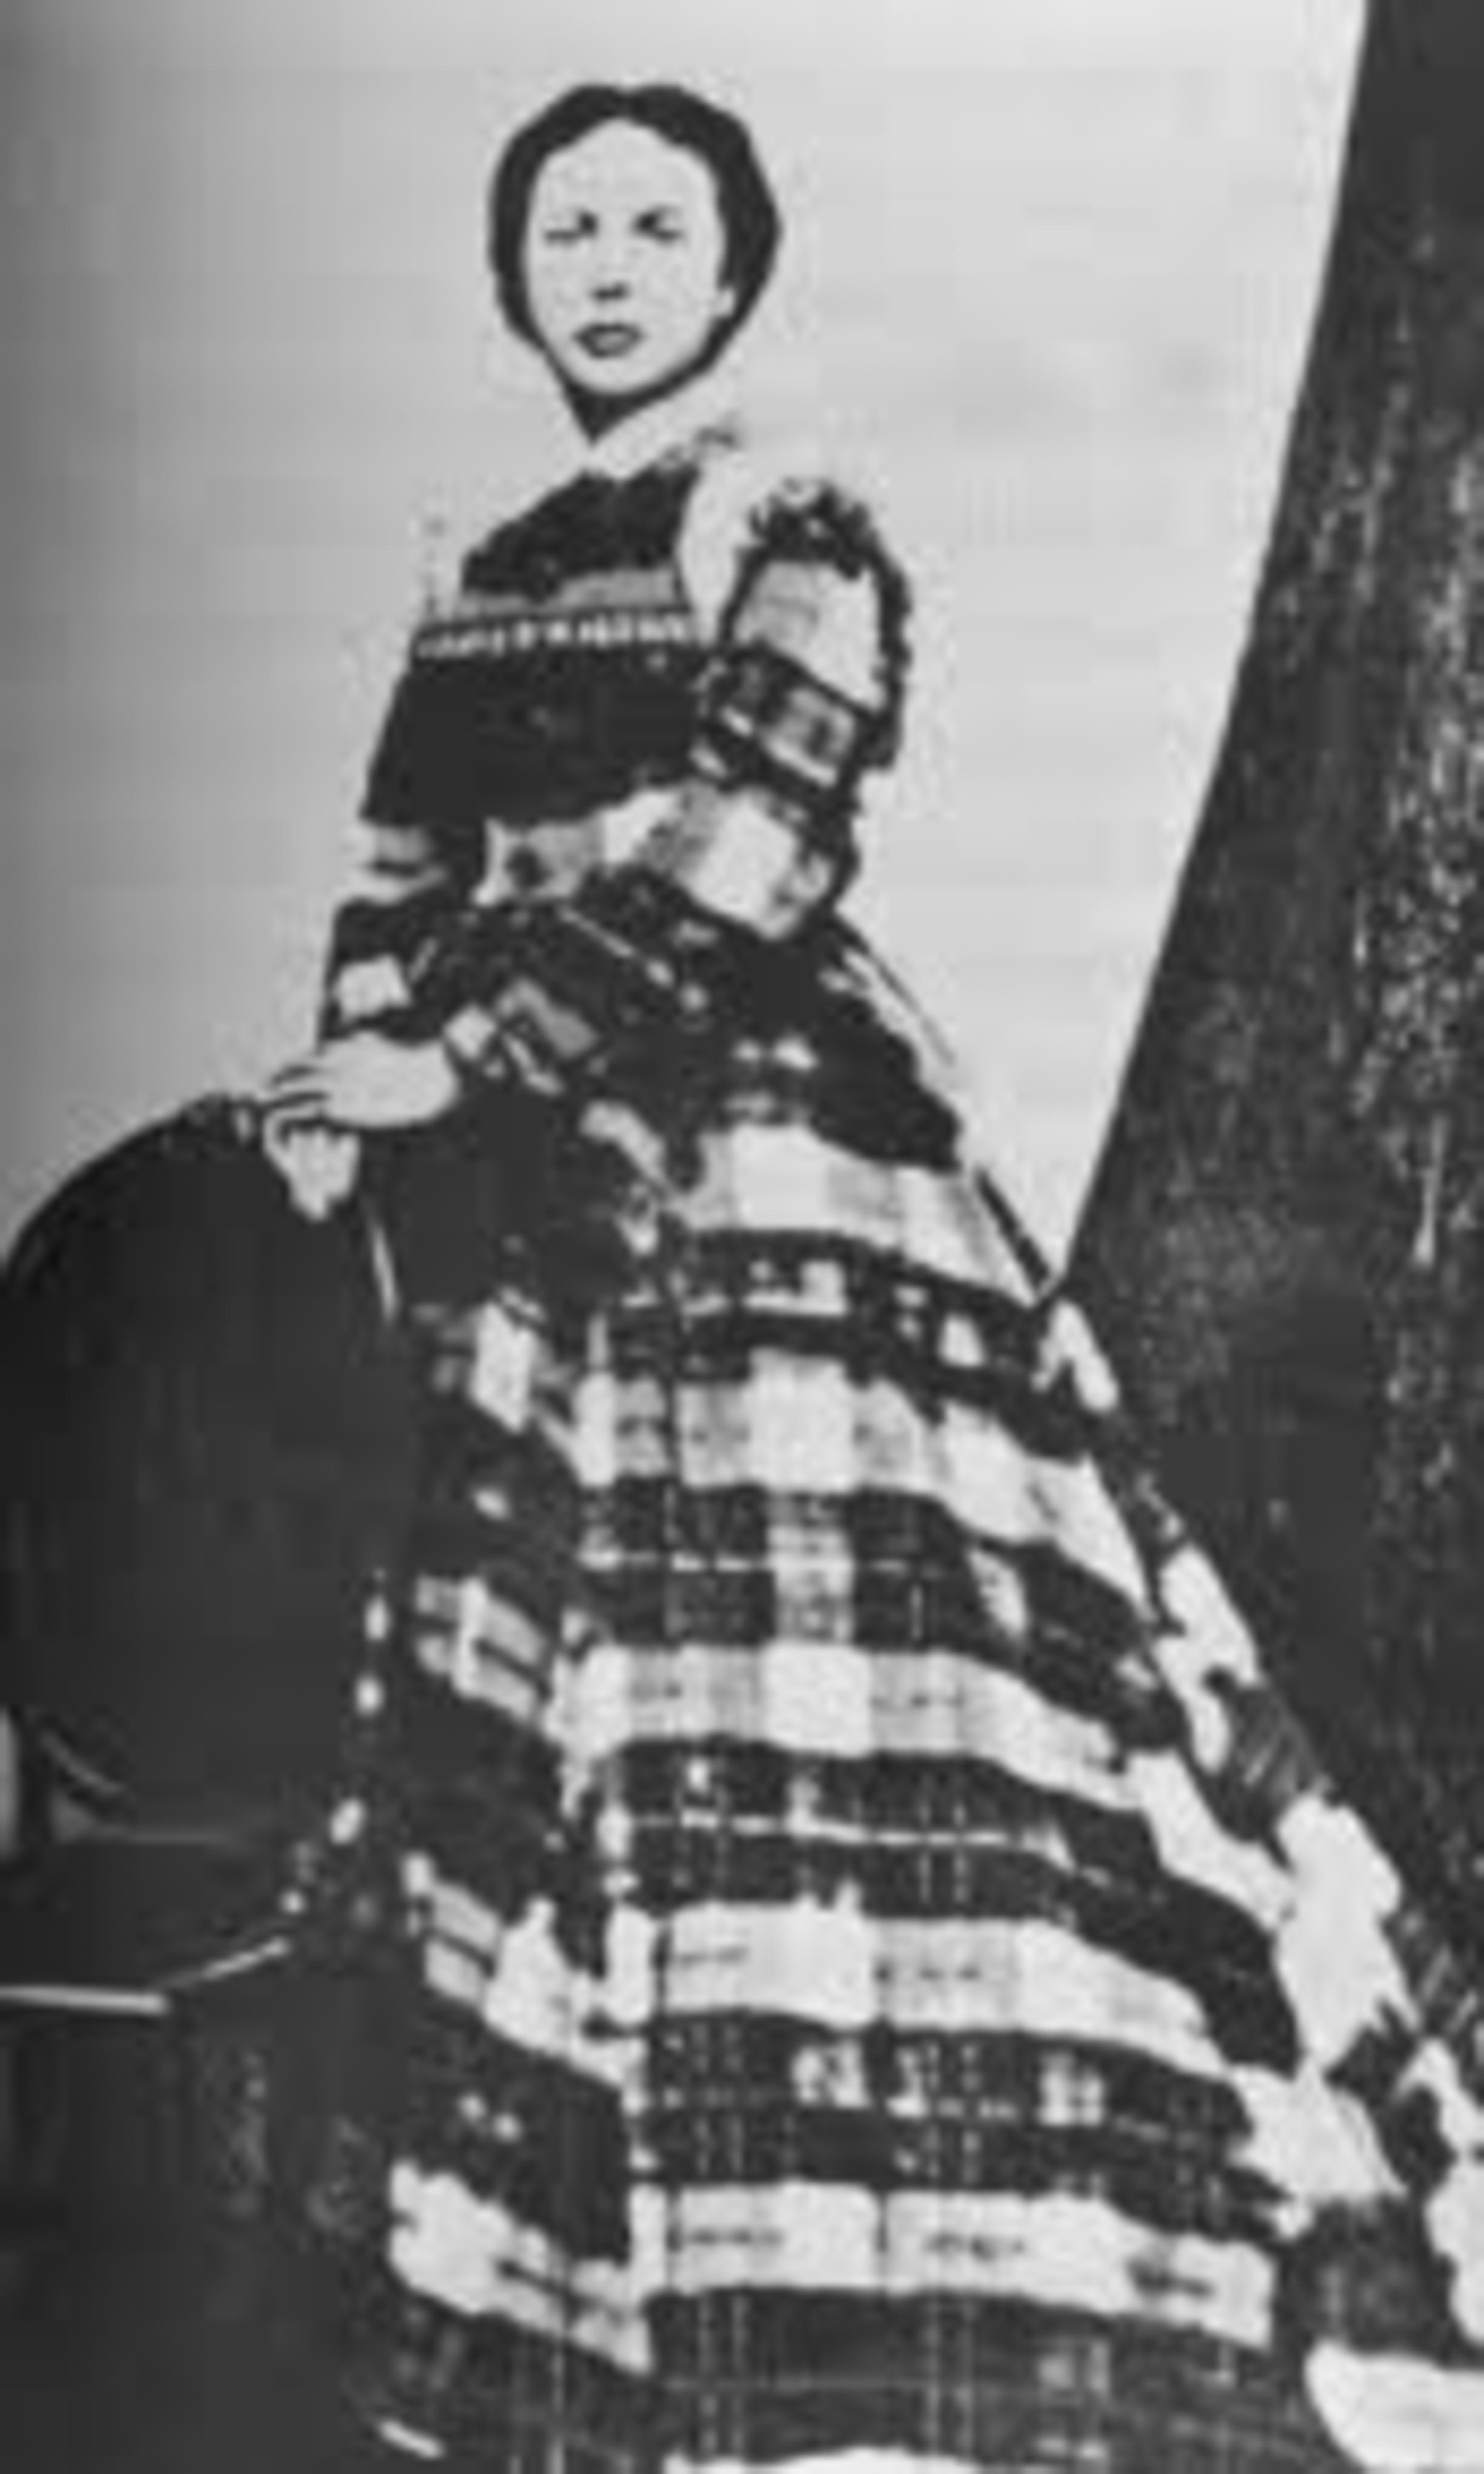 The Death Of Dora Hand is about a dance hall singer from America's East Coast who ended up in the fabled Boot Hill cemetery in Dodge City